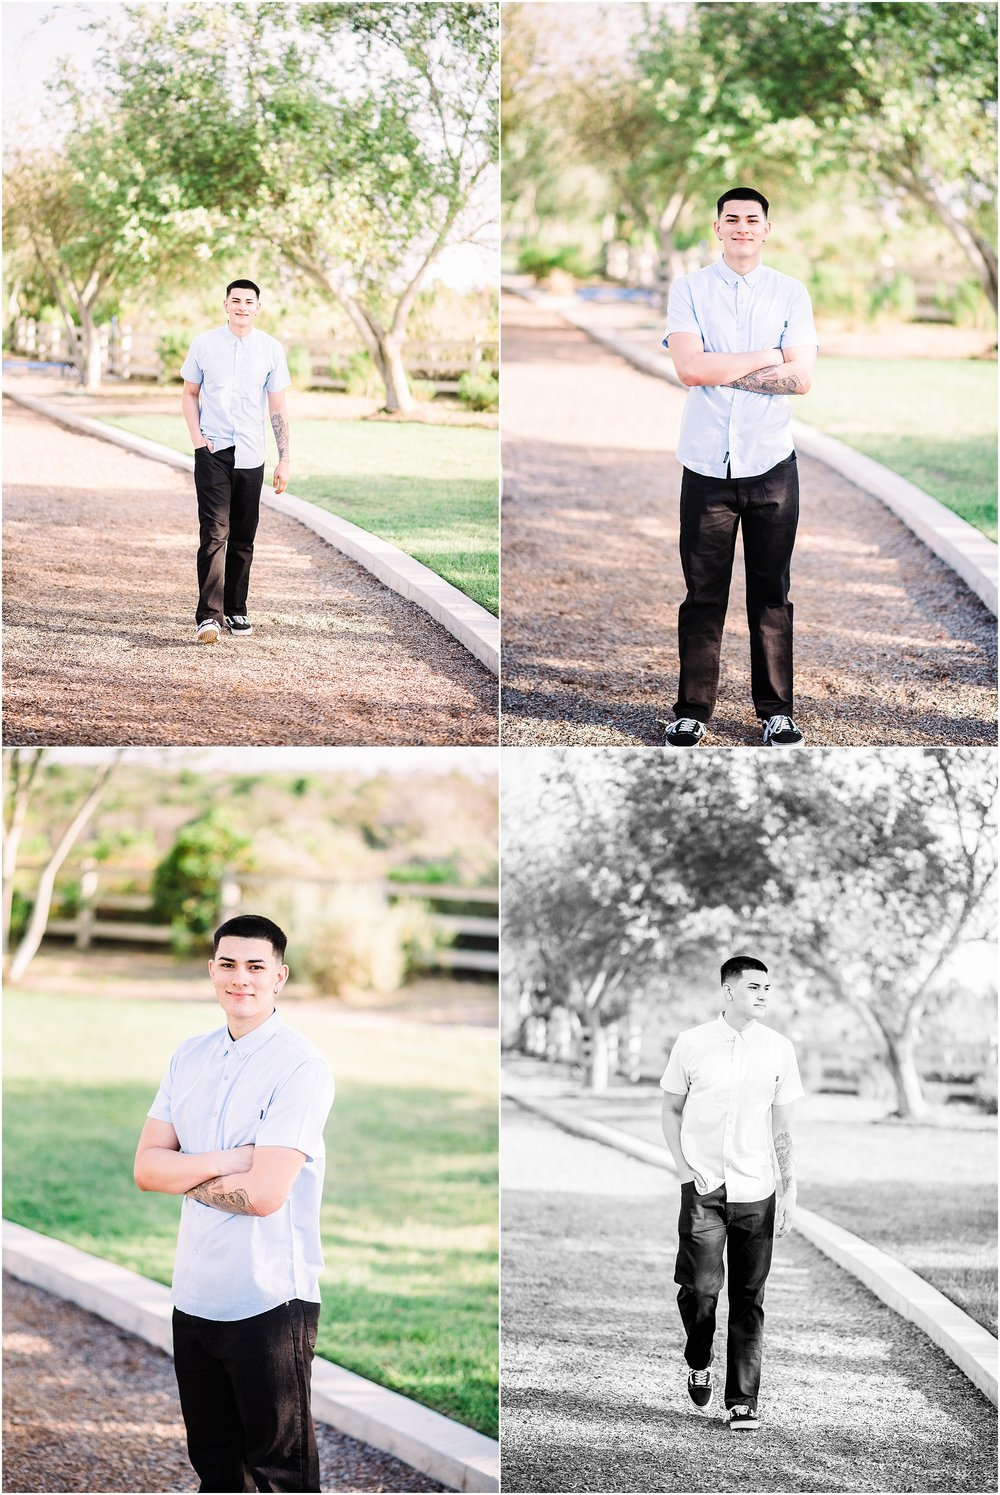 Ventura-California-Senior-Photographer-and-Tallahassee-Florida-Senior-Photographer-Johnny—Senior-Session-in-Oxnard-California_0006.jpg